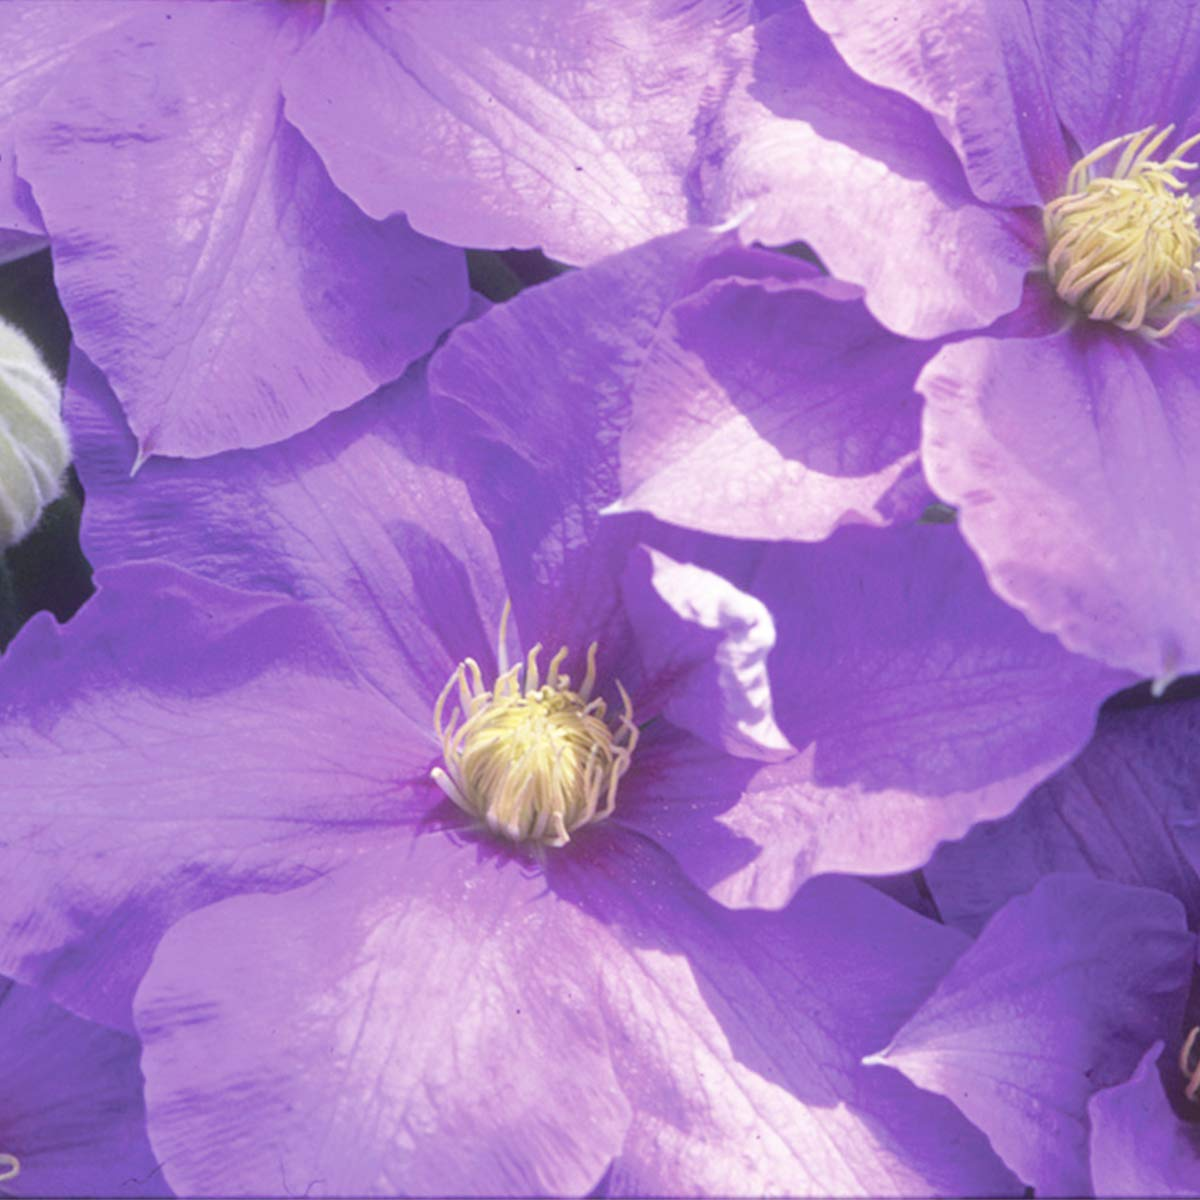 Burpee Perennial Clematis 'H. F. Young' Live Plant in a 6'' pot, True Blue Flowers, One Plant by Burpee (Image #3)